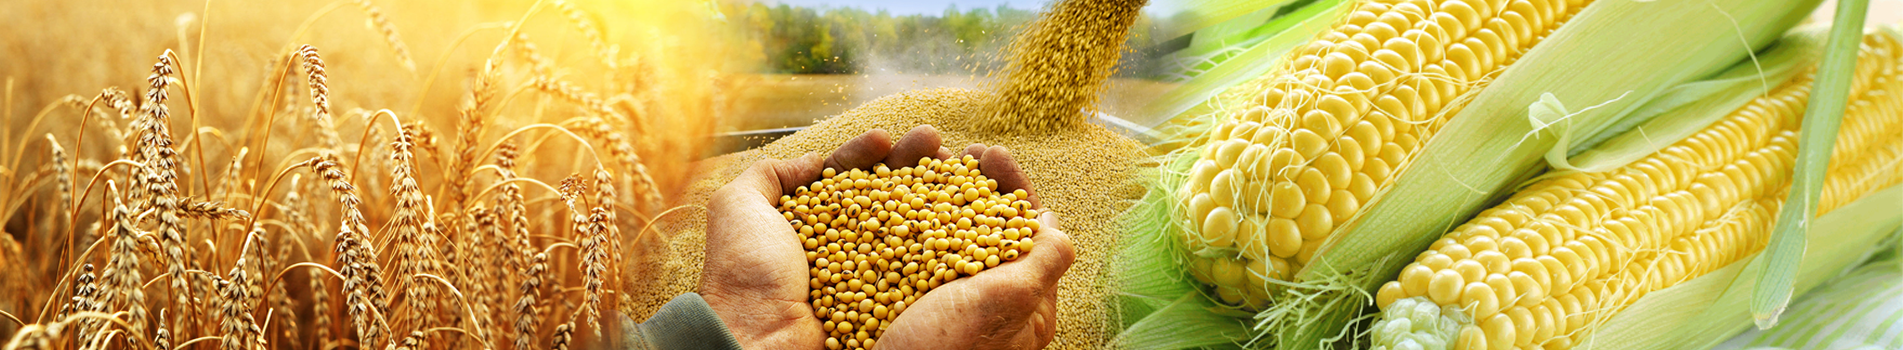 Agro Commodities Trading company | Agricultural Product Commodity